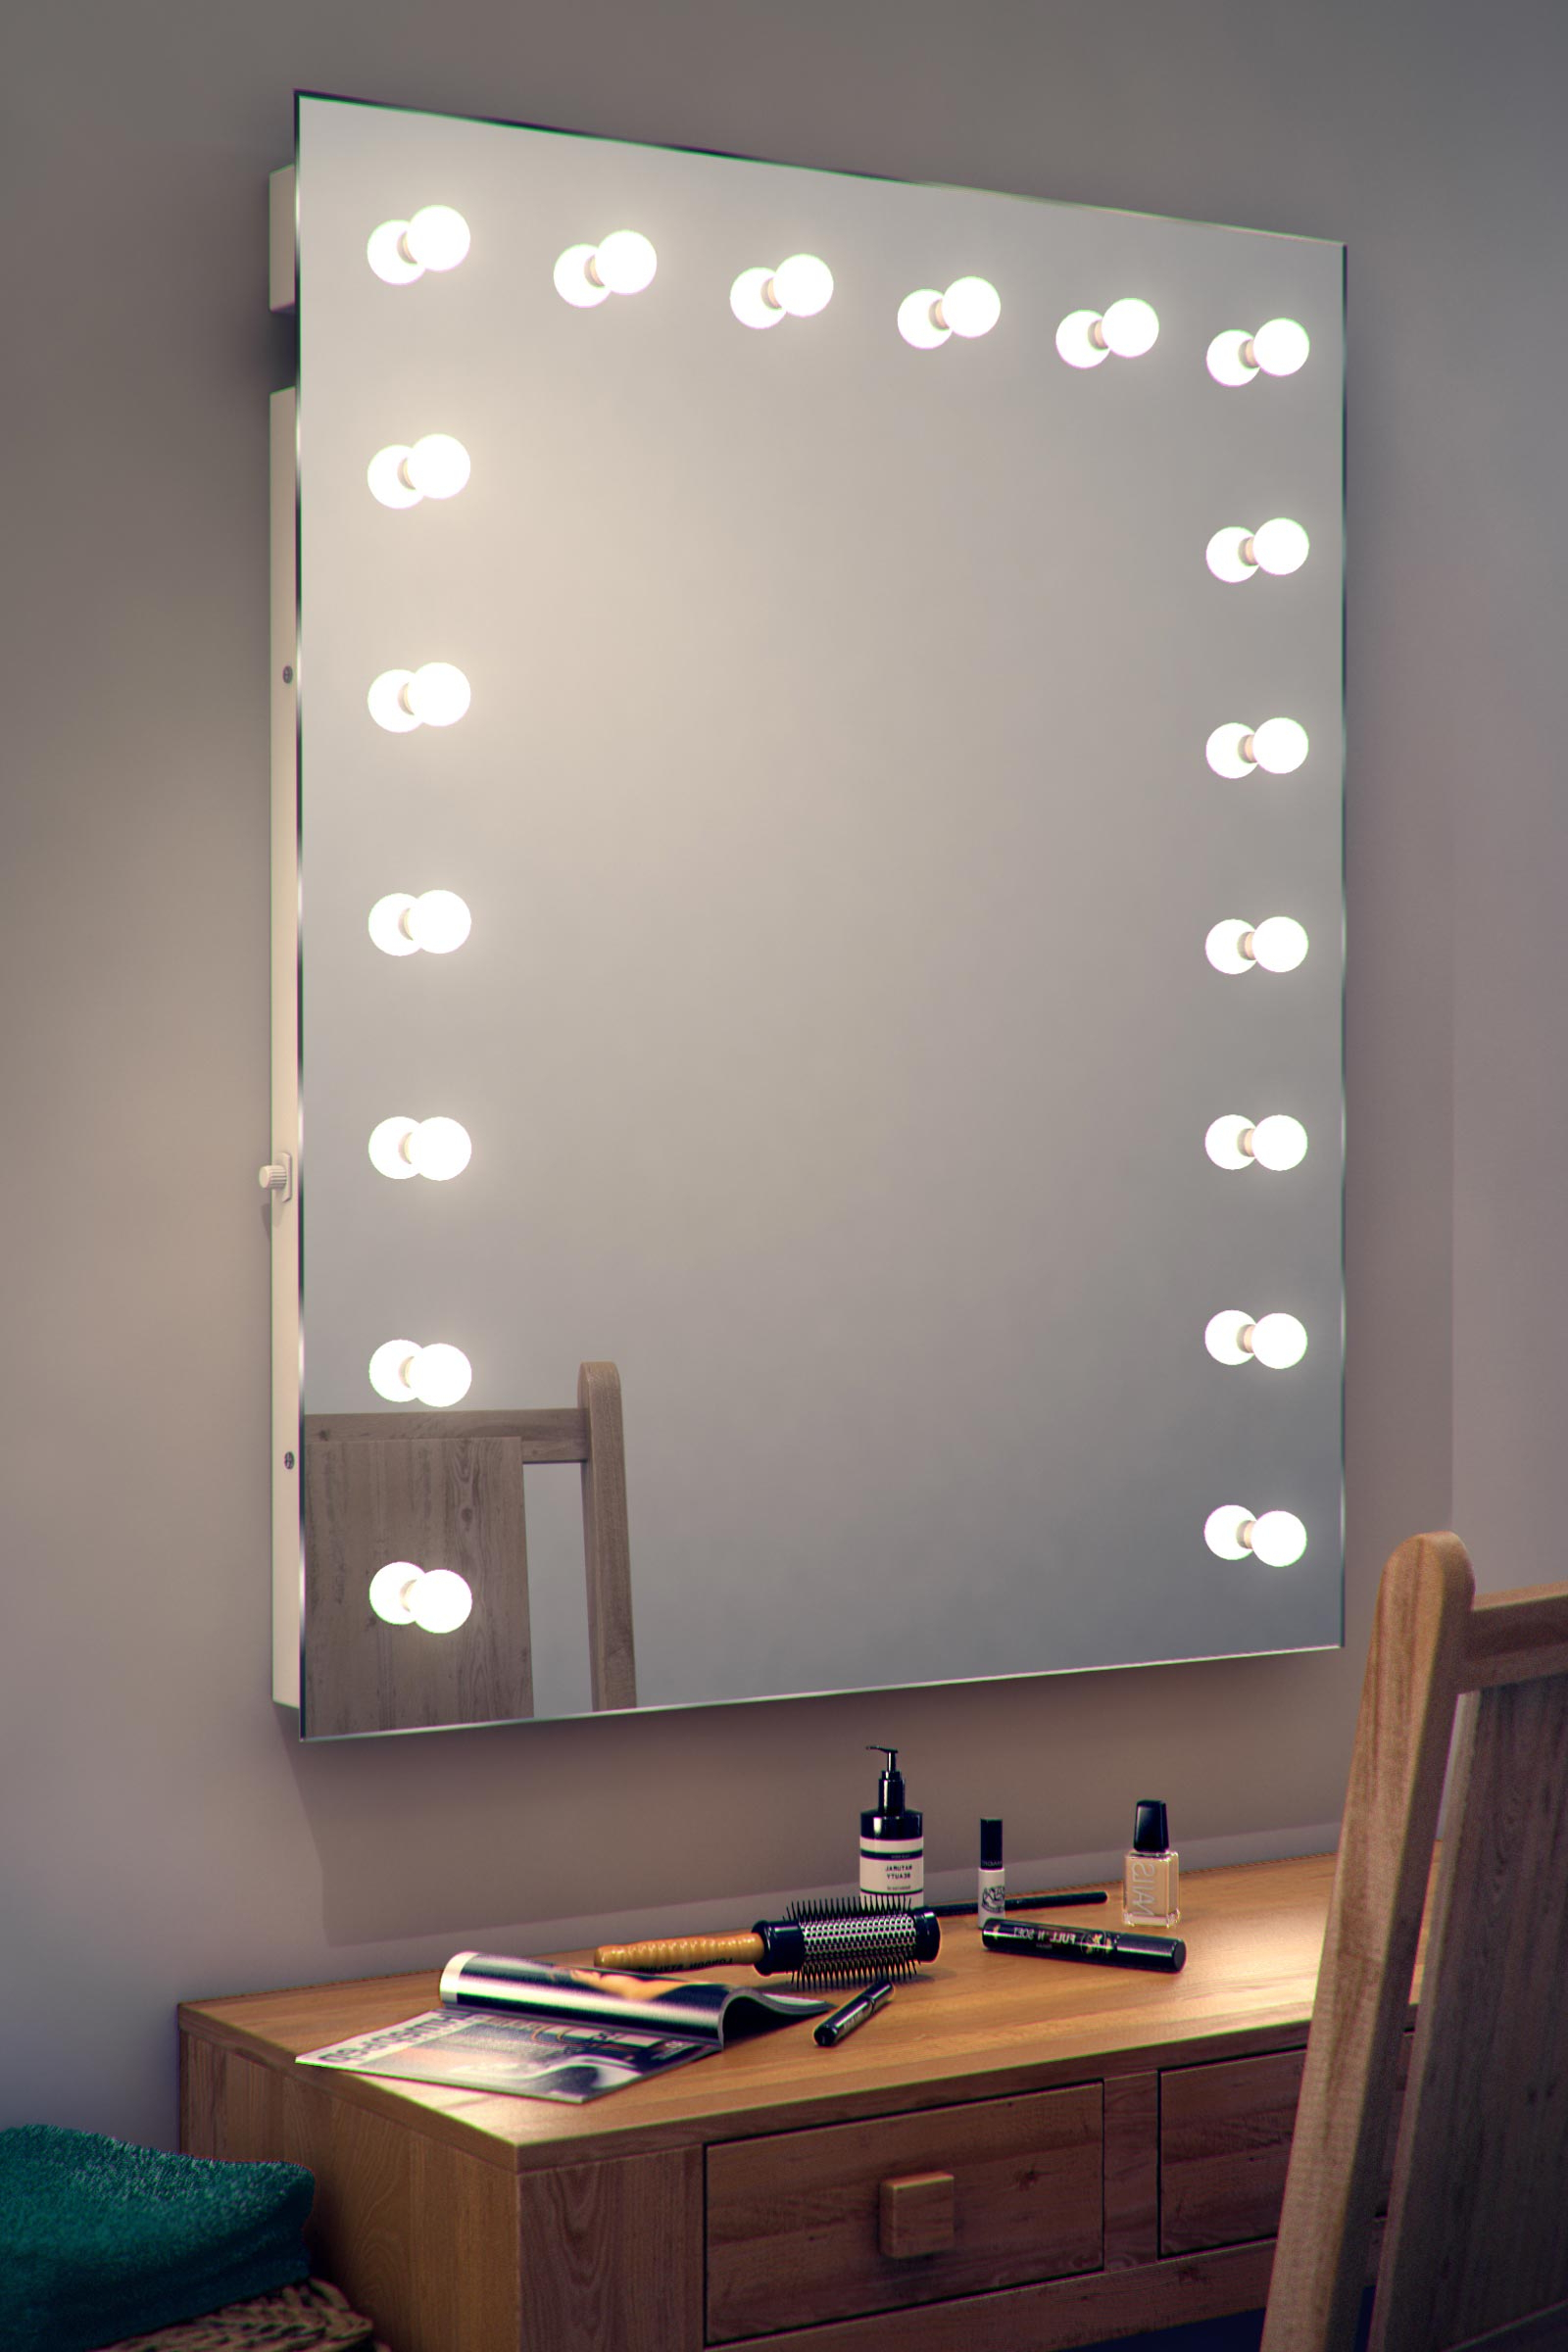 Magnificent Mirror With Lights Around It – Kiakiyo In Most Up To Date Lighted Vanity Wall Mirrors (View 11 of 20)